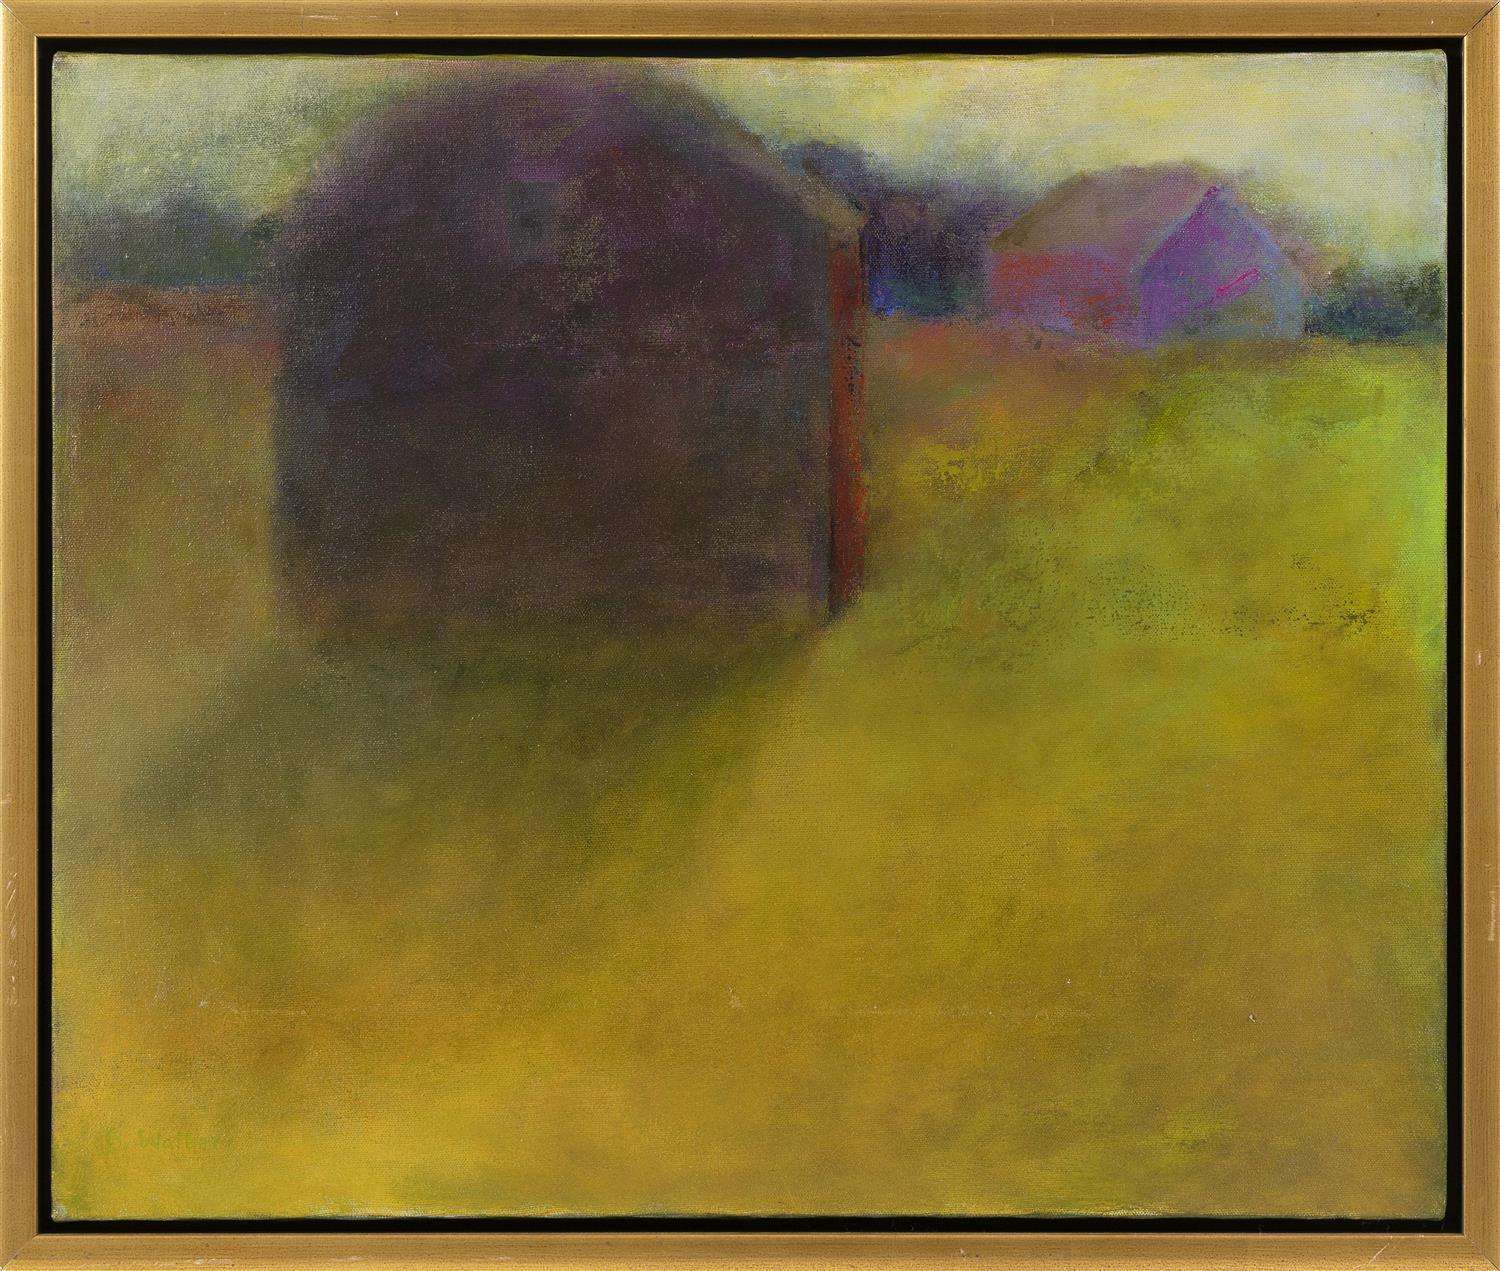 """BEV WALKER, America, Contemporary, Abstract of barns., Oil on canvas, 20"""" x 24"""". Framed 22"""" x 26""""."""